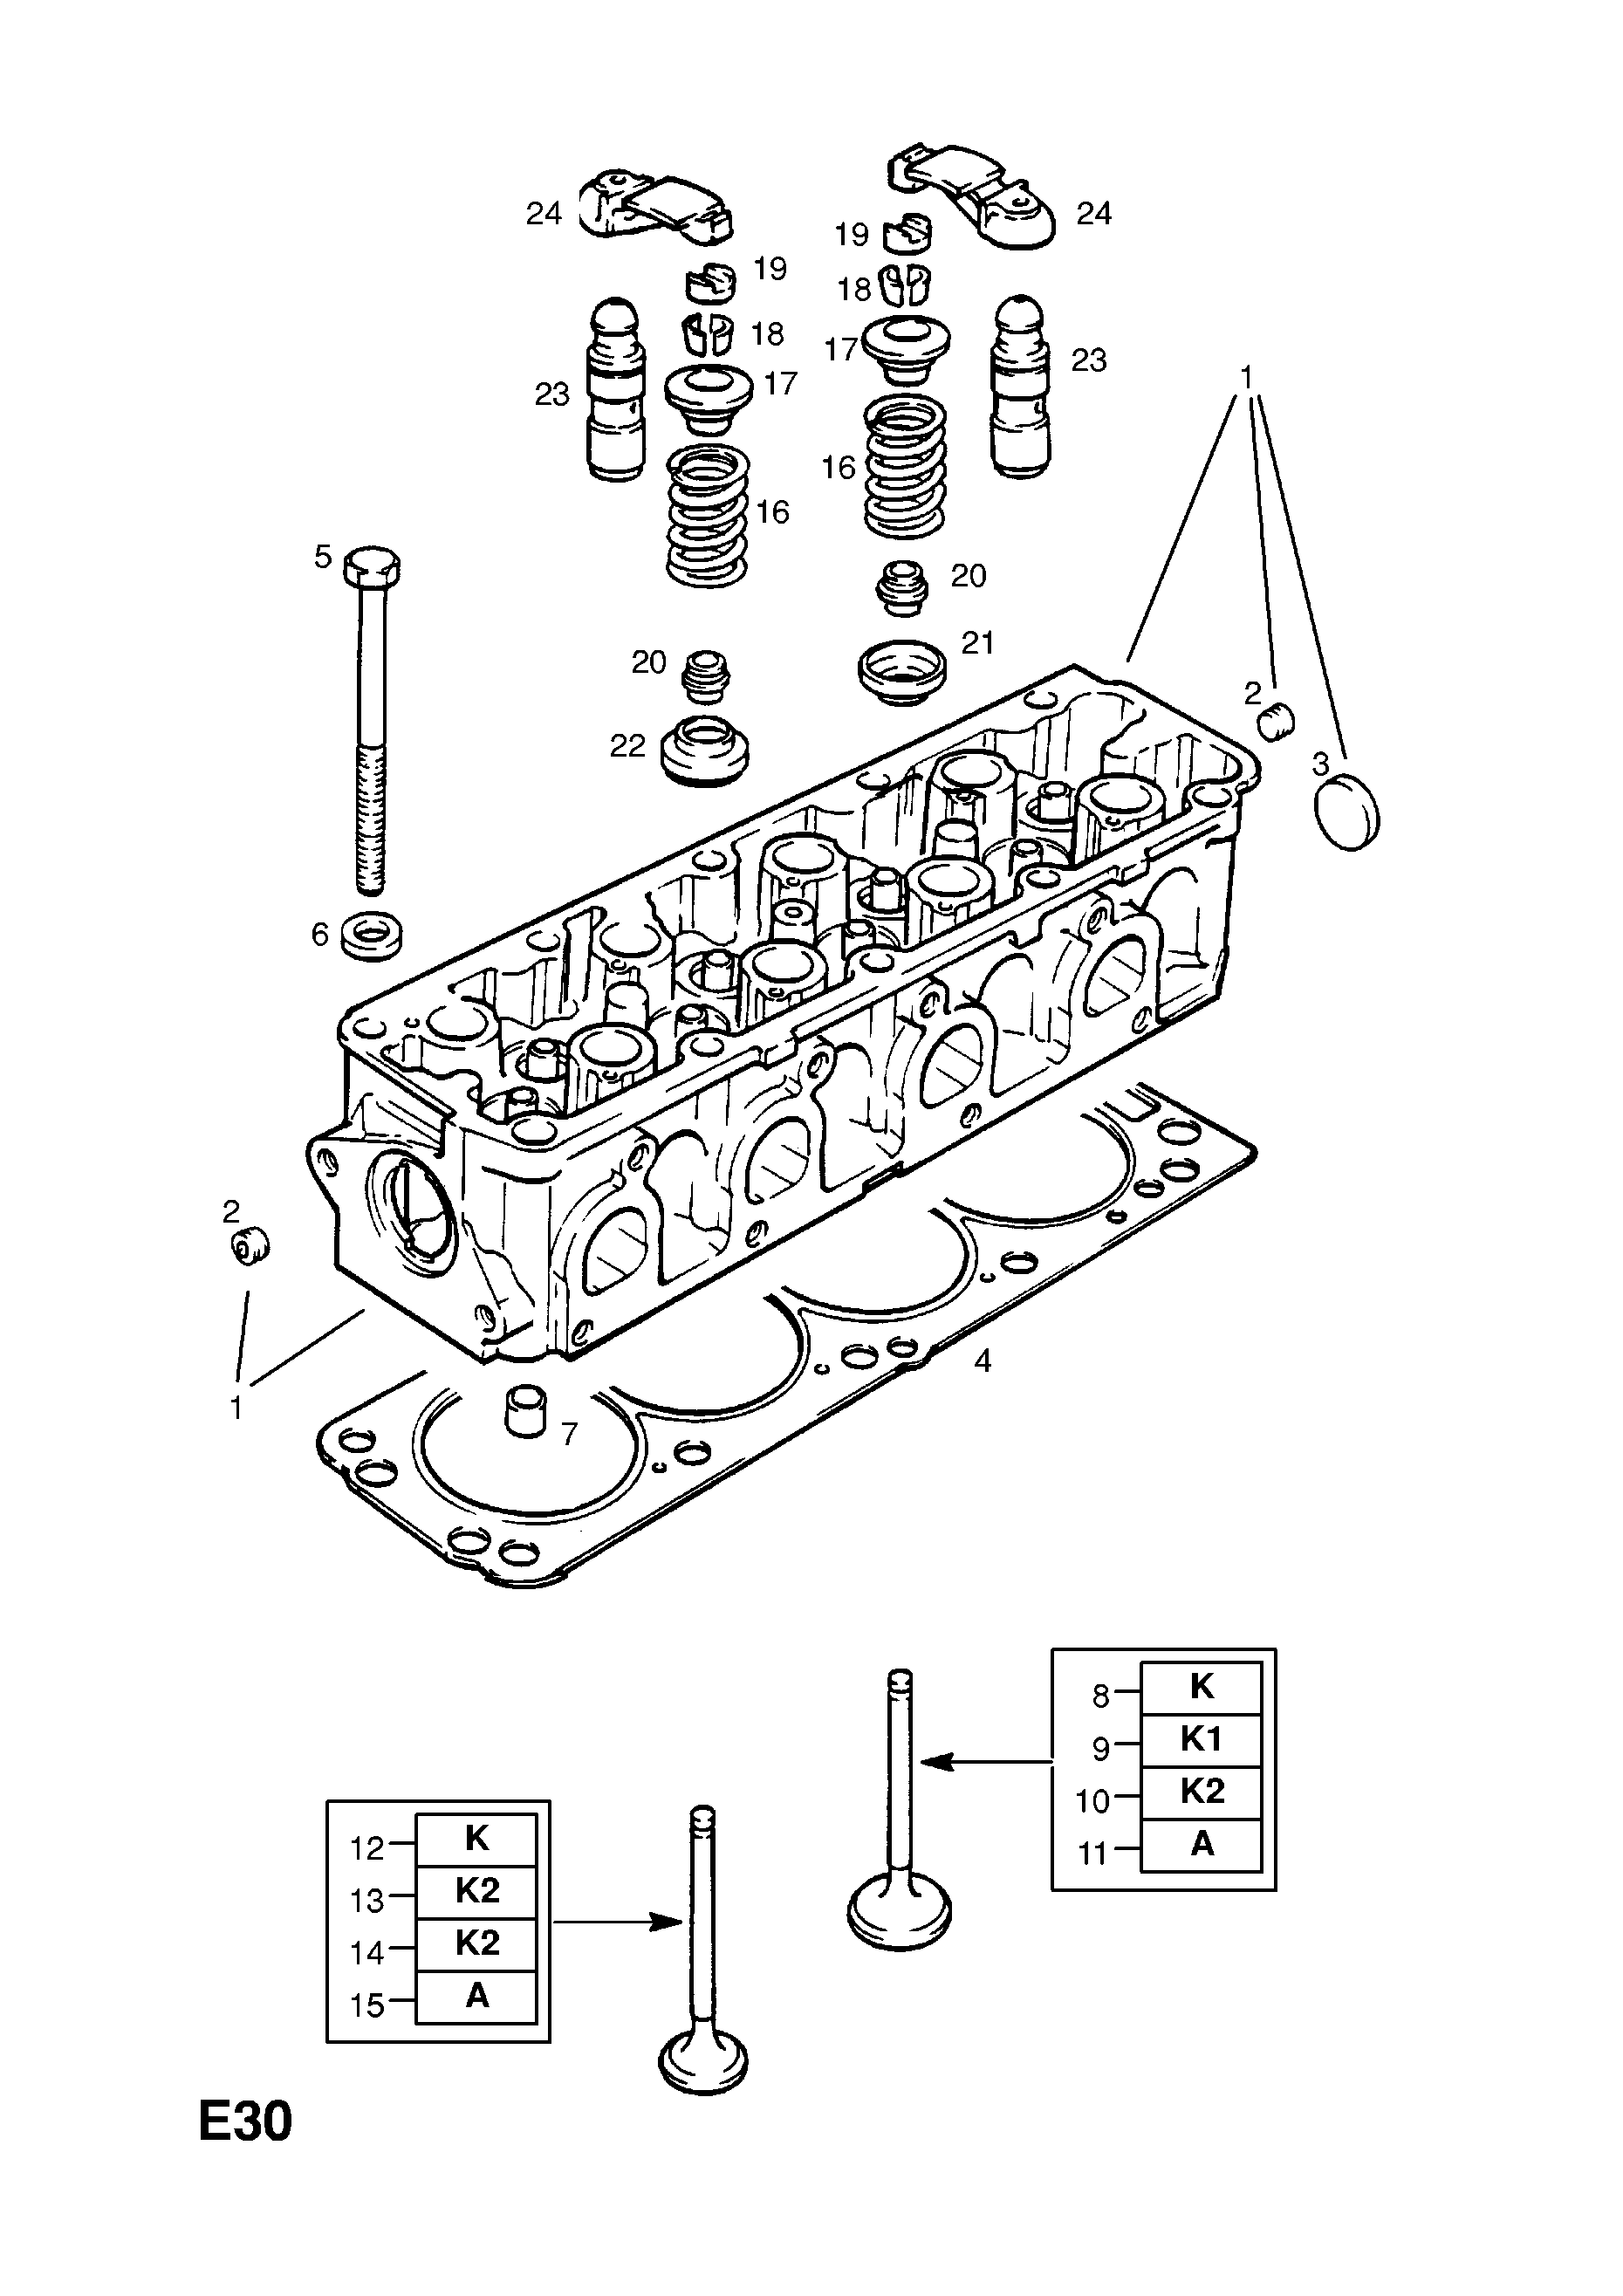 L48 Engine Diagram Good Guide Of Wiring Corsa B Vauxhall I Need The 1993 2002 E And Clutch 4 C14nz 2h6 Rh Catcar Info L69